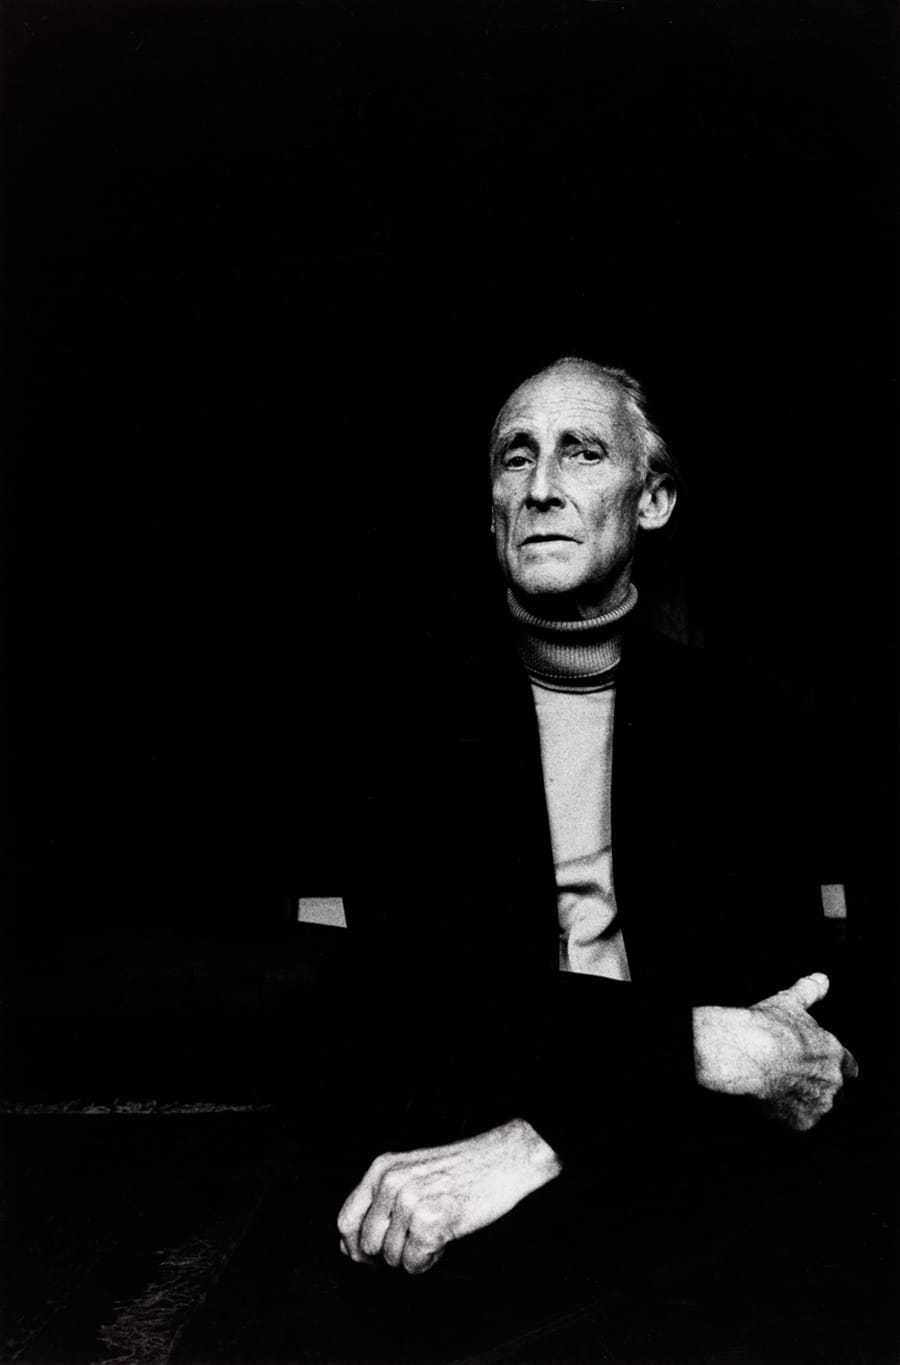 Portrait of Bill Brandt 1979